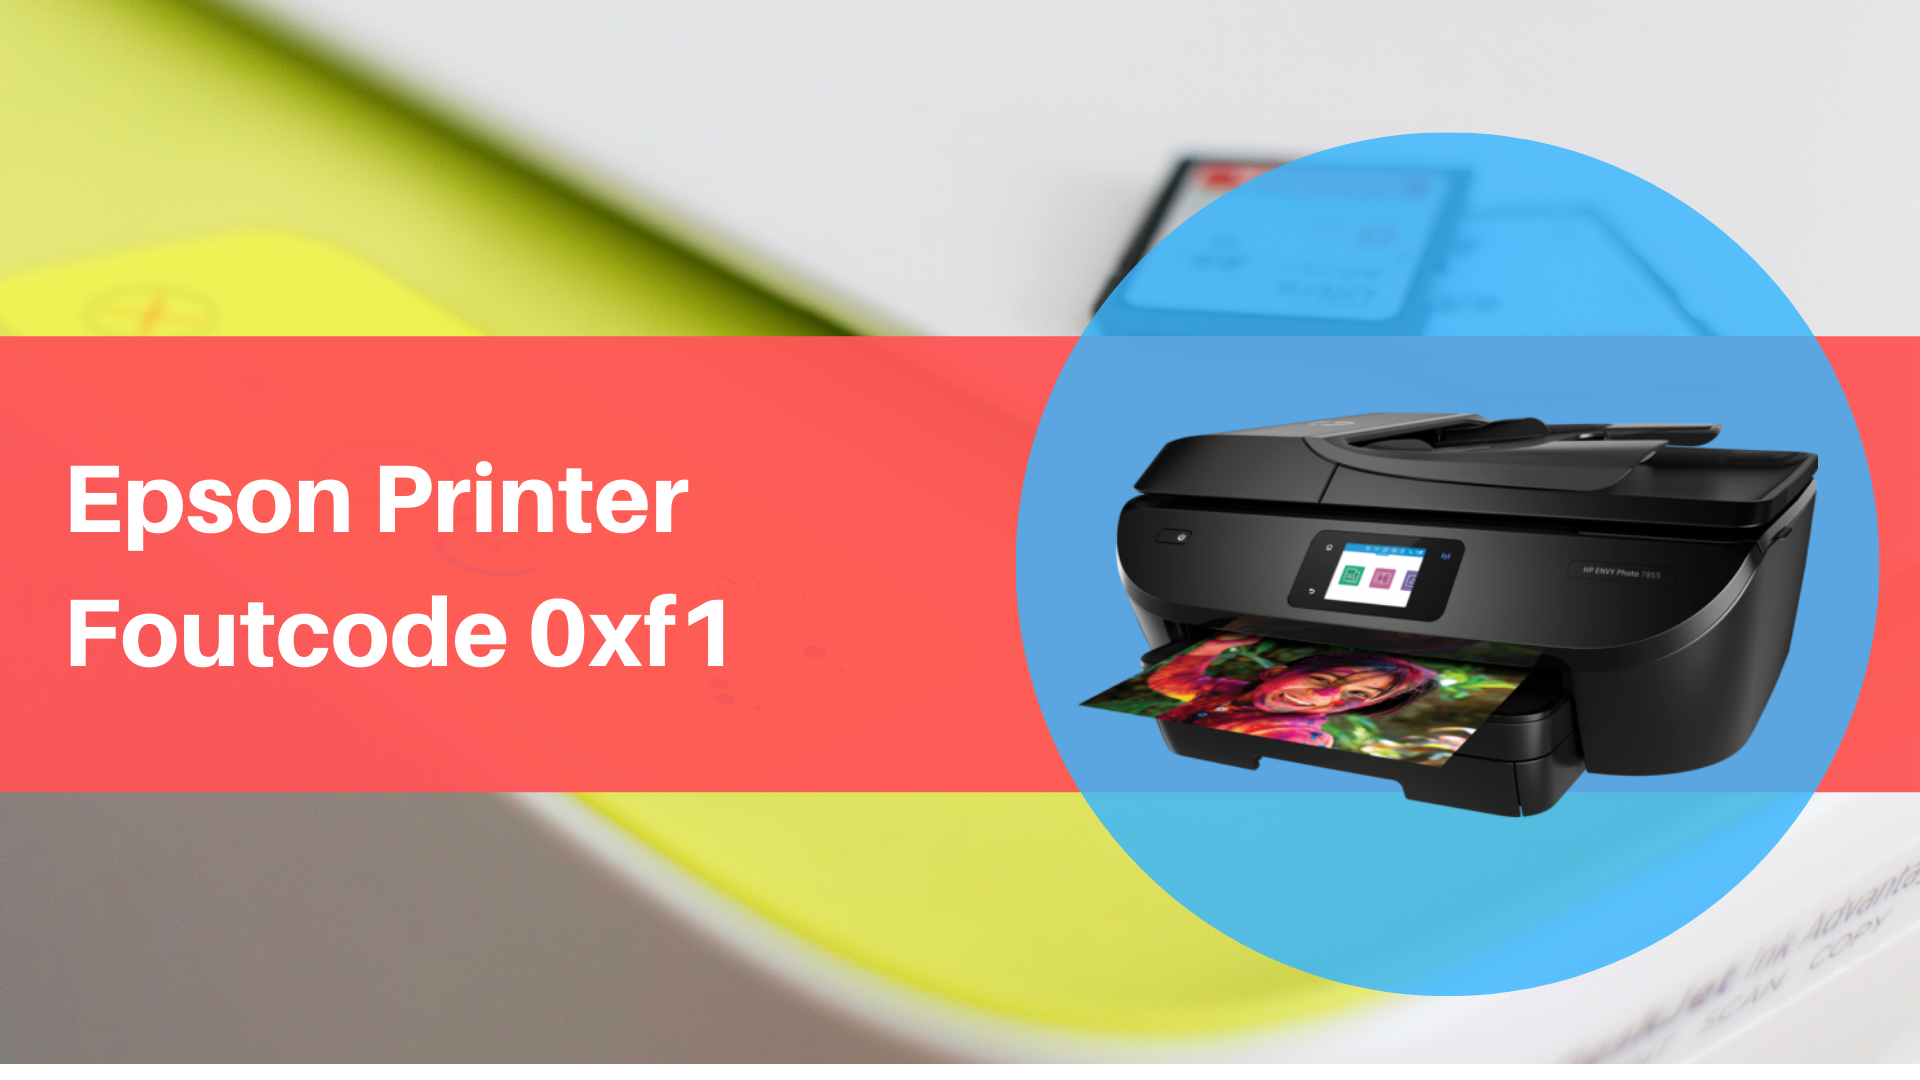 Epson Printer Foutcode 0xf1